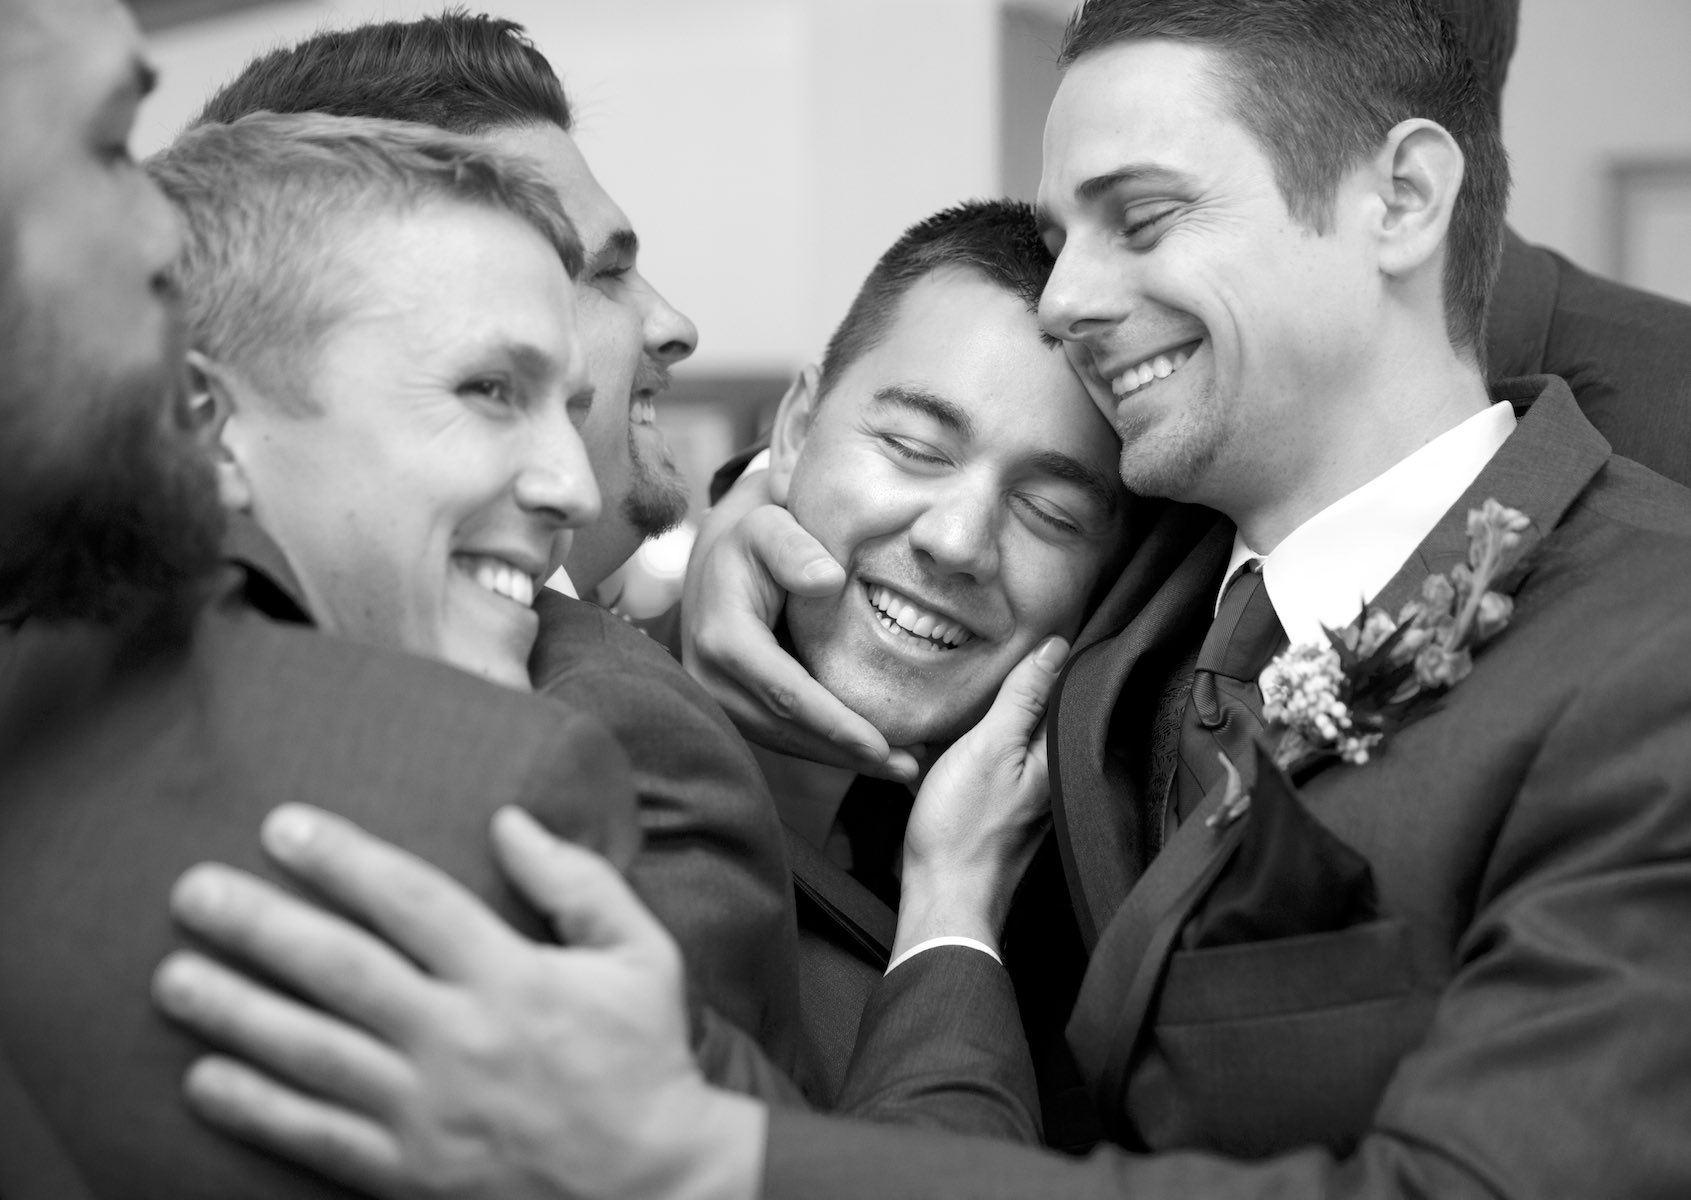 Nick gets a group hug from his attendants as they get ready for the wedding ceremony at the Jacksonville Illinois Country Club. Wedding photography by Steve & Tiffany Warmowski